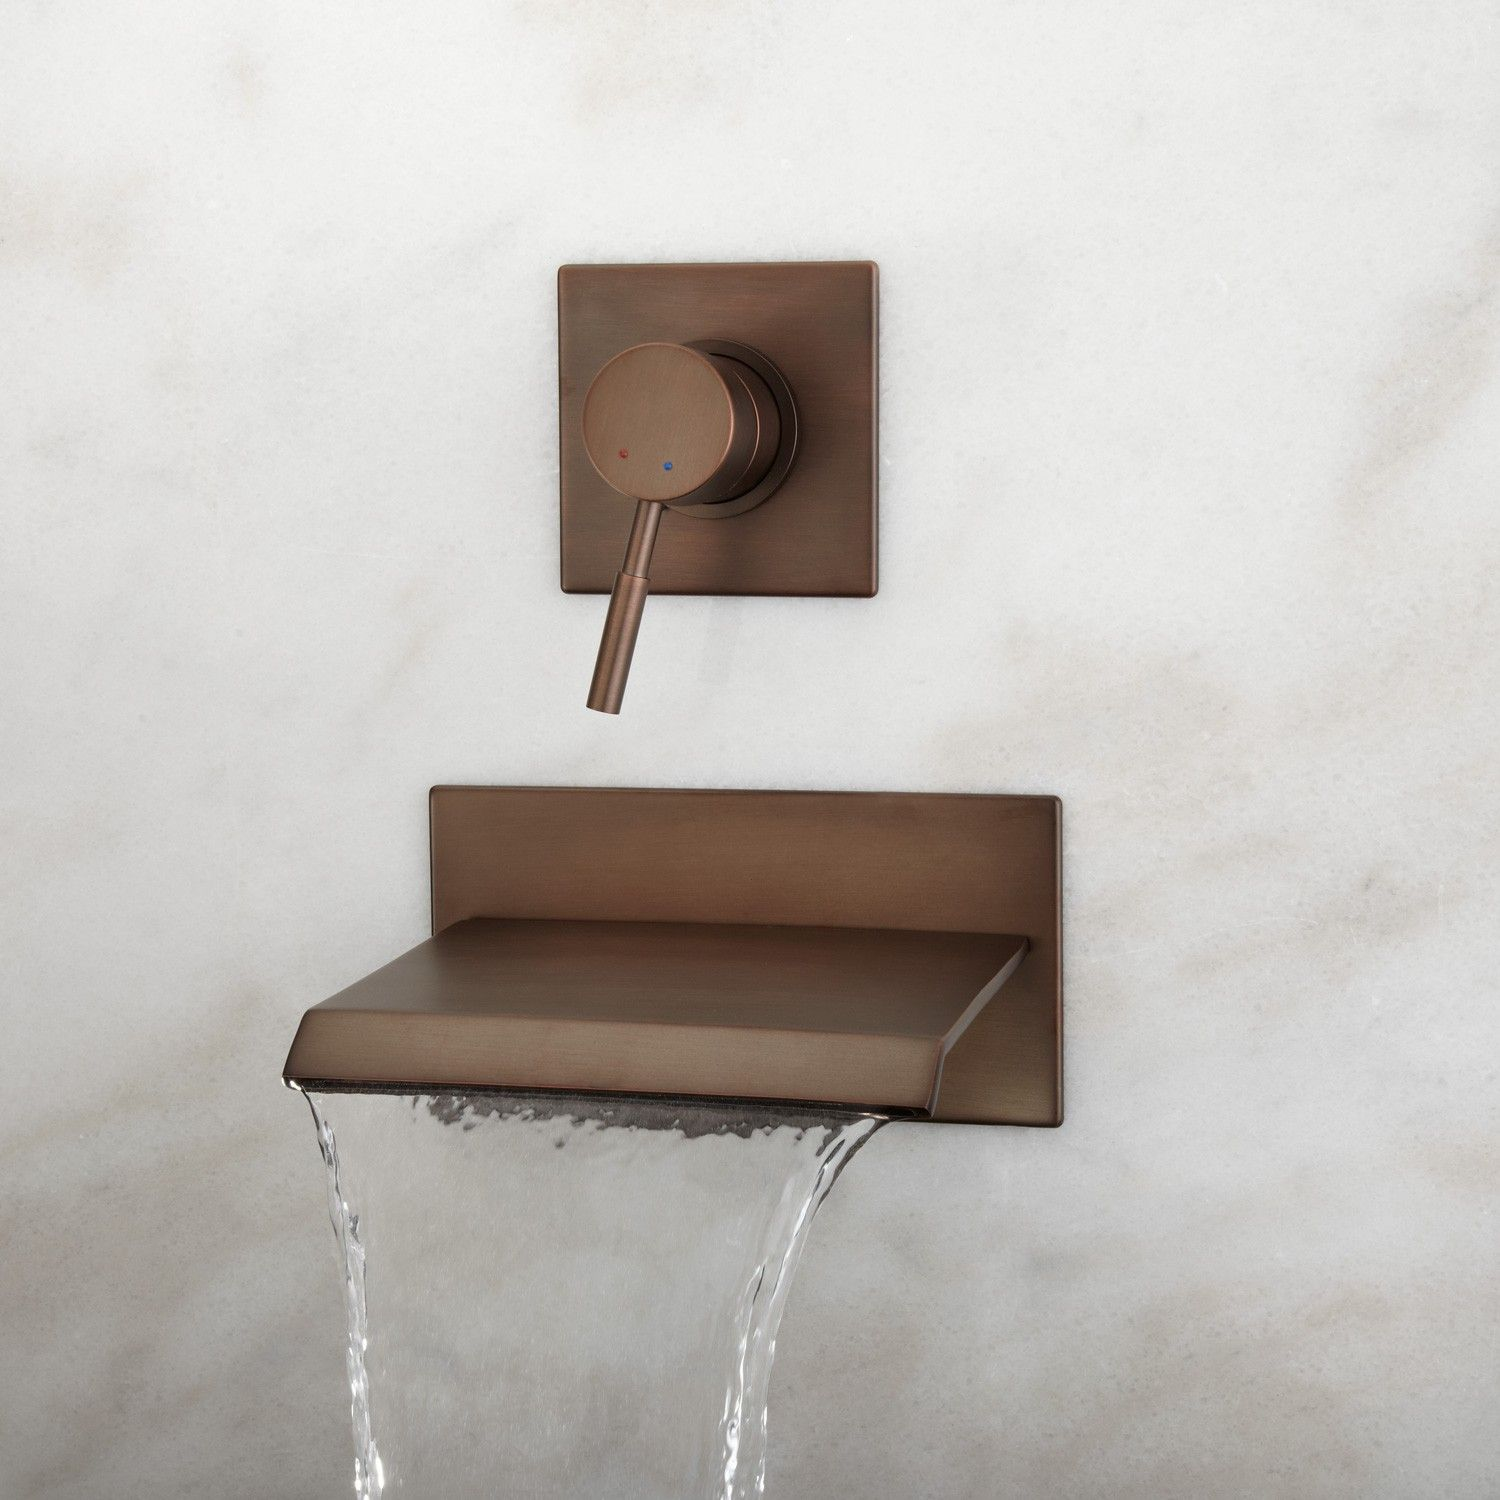 Home Element Lavelle Wall Mount Waterfall Tub Faucet Wall